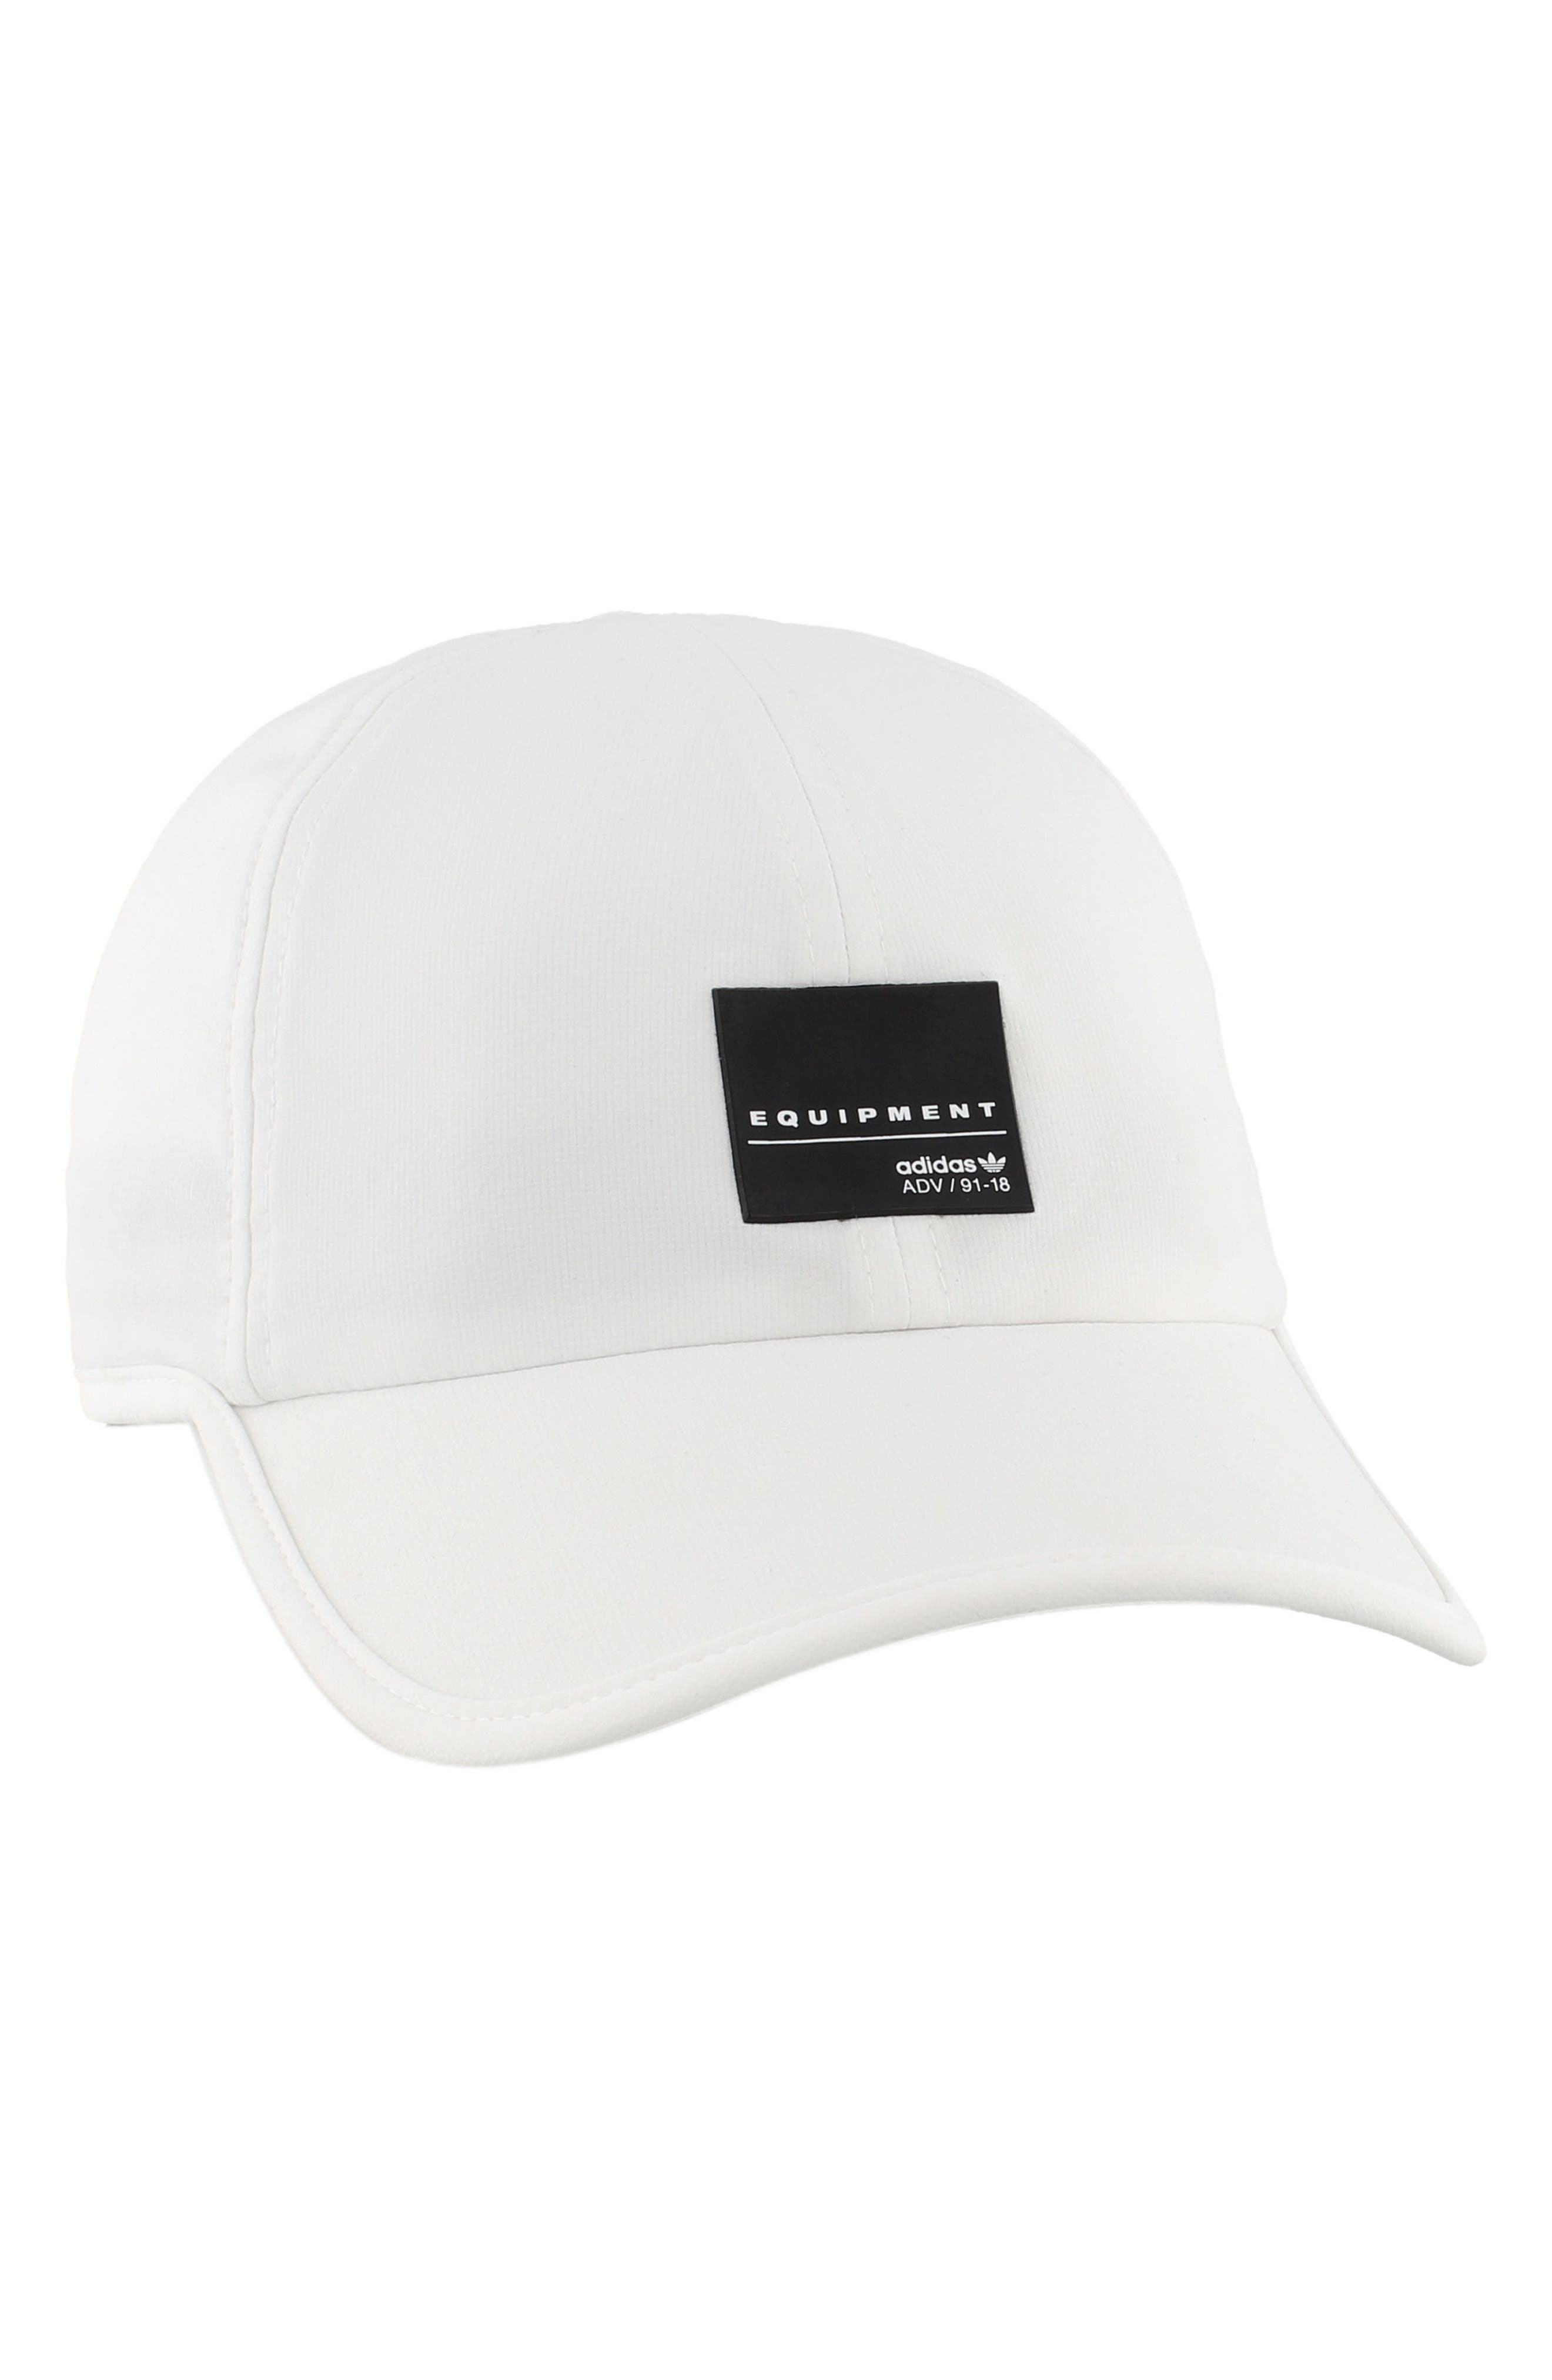 EQT Trainer Cap,                             Alternate thumbnail 6, color,                             White